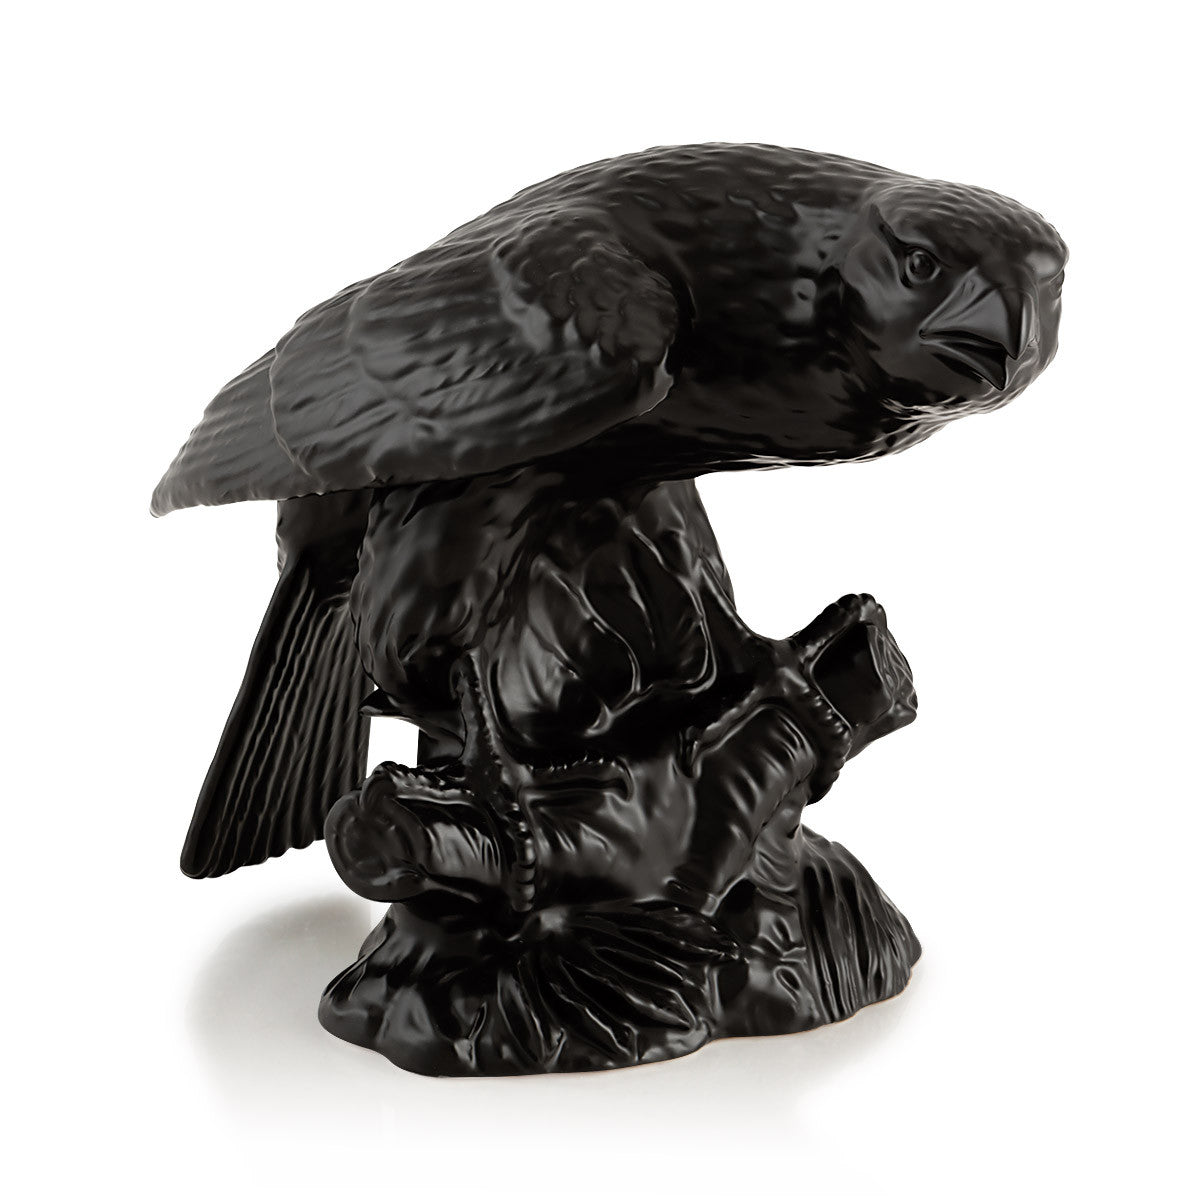 Ceramic black bald eagle statue